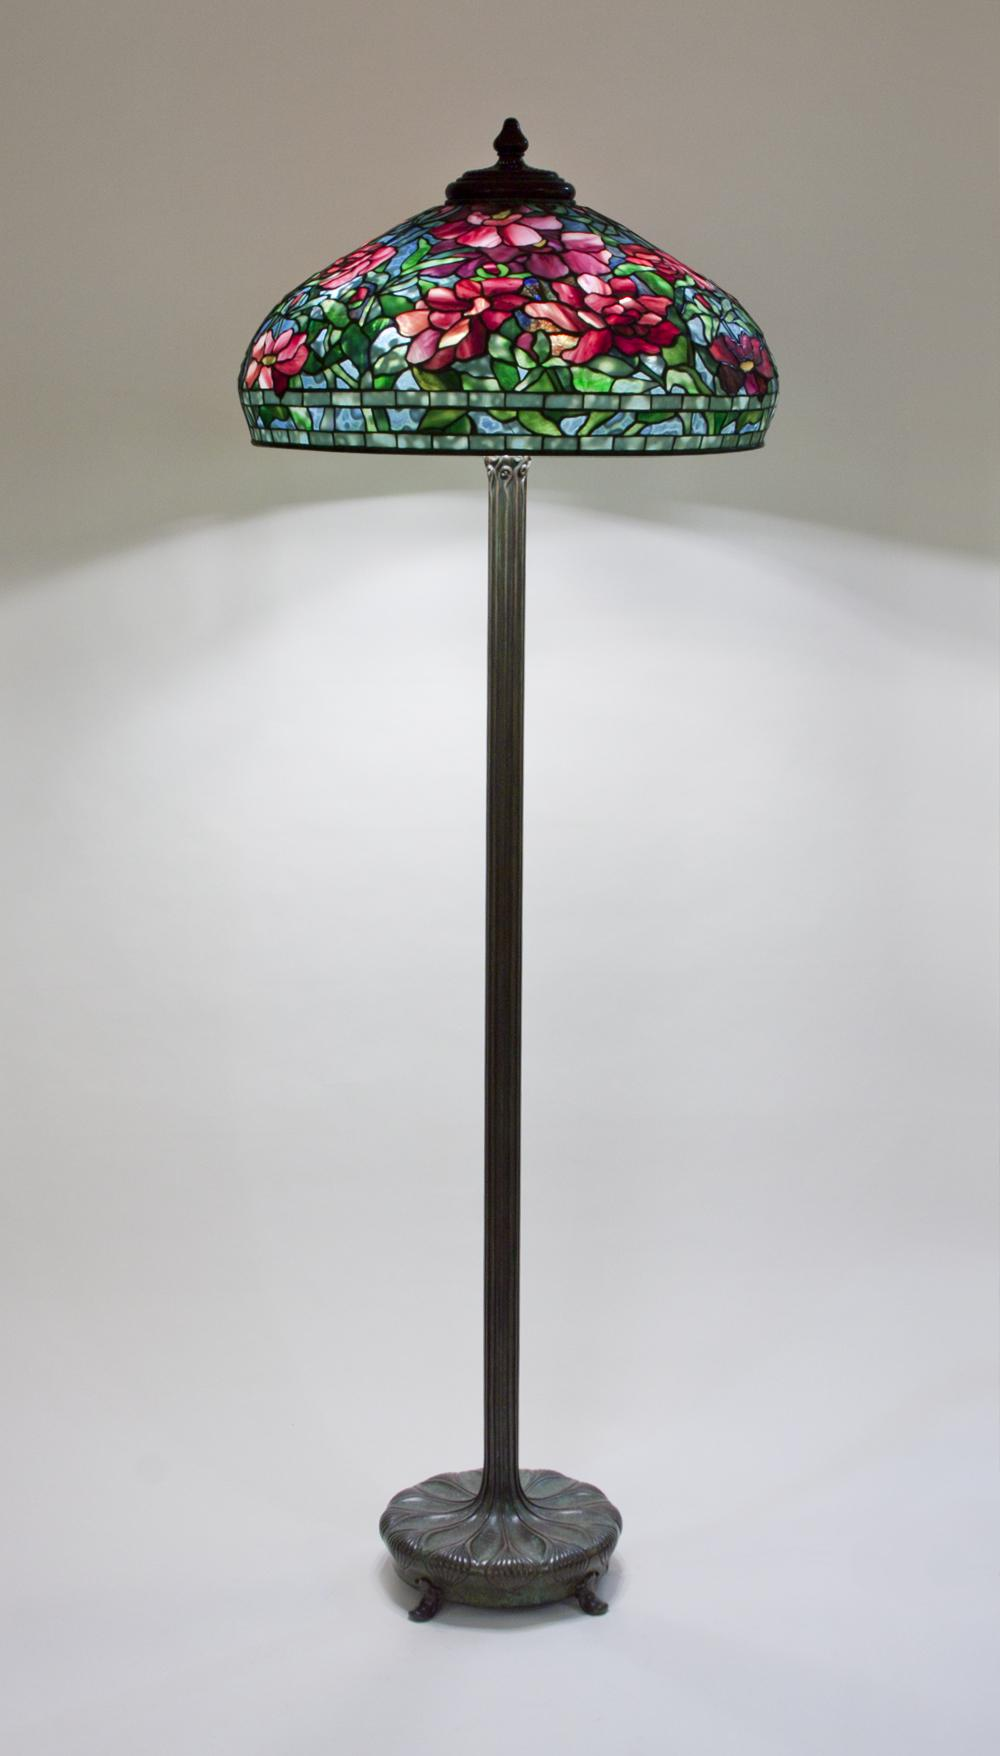 Tiffany Studios  Peony Junior Floor Lamp 1